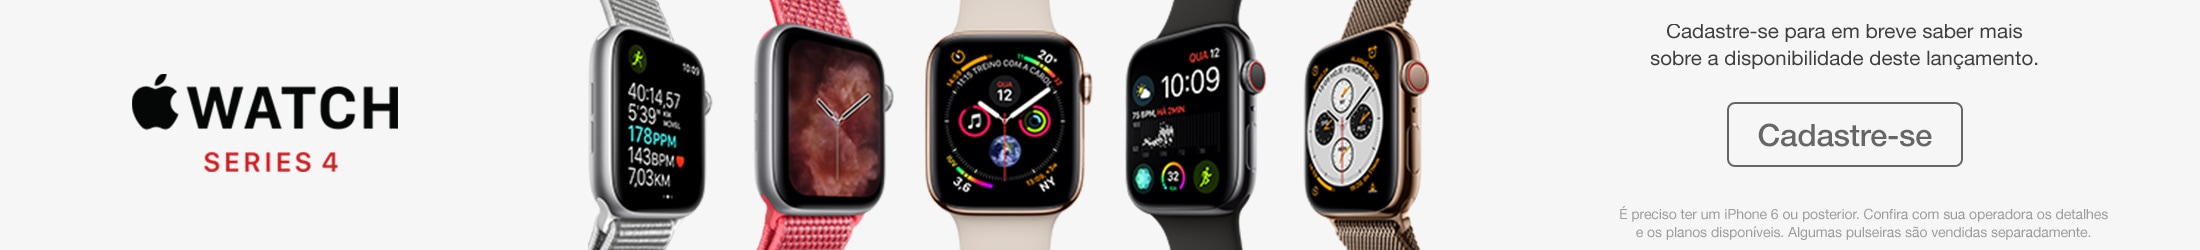 Banner do Apple Watch Series 4